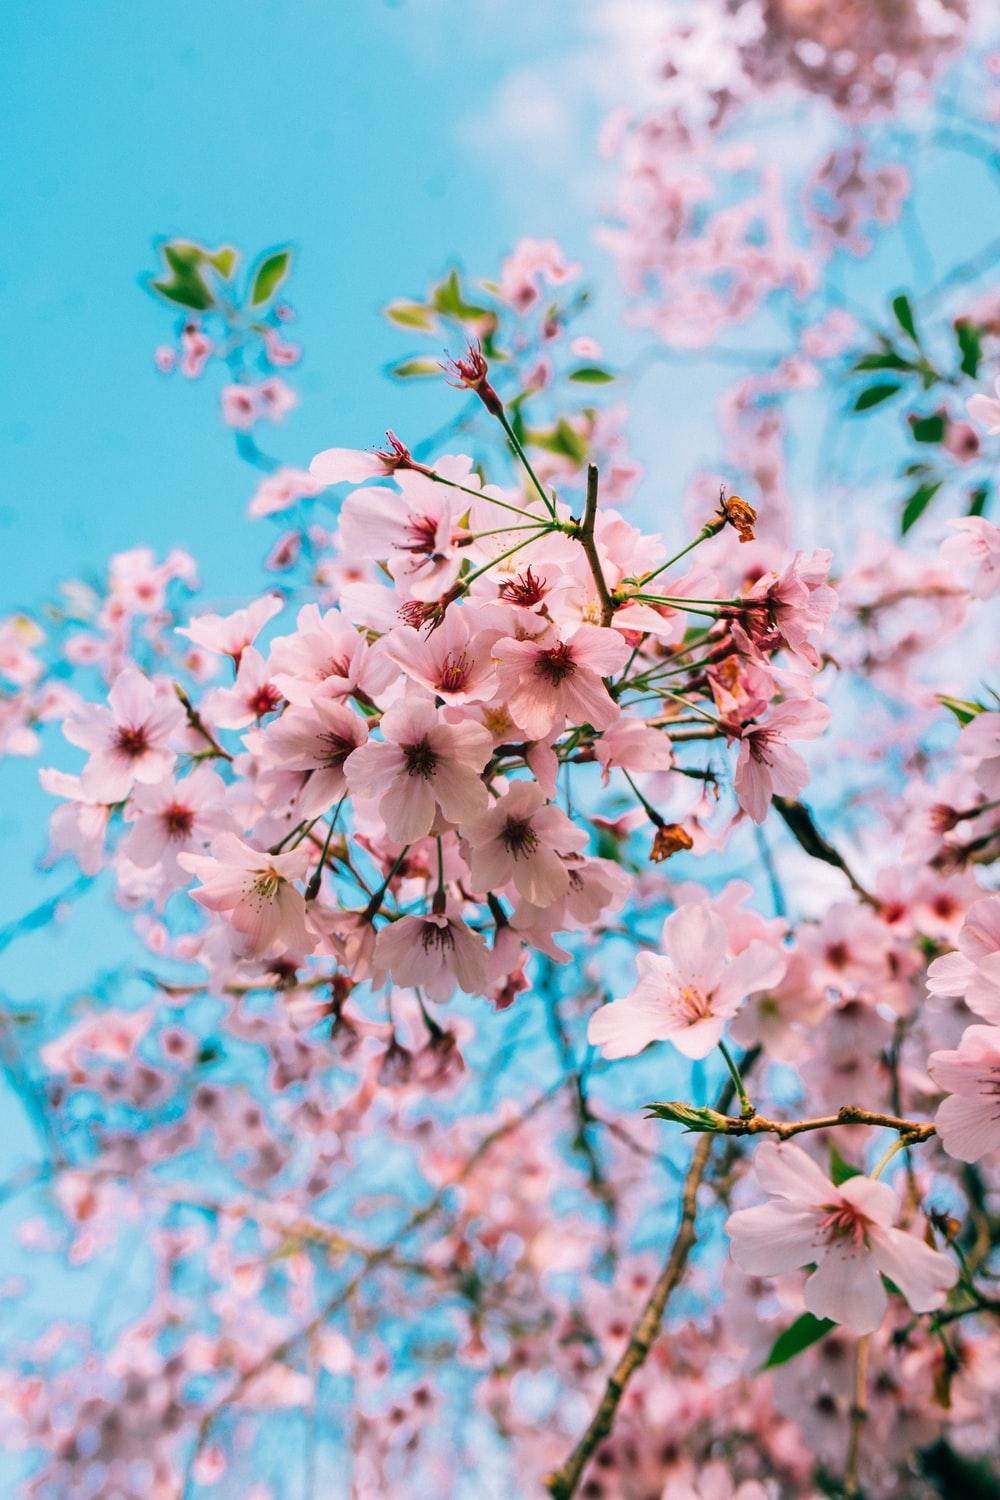 Cherry Blossom Wallpapers: Free HD Download [500+ HQ]